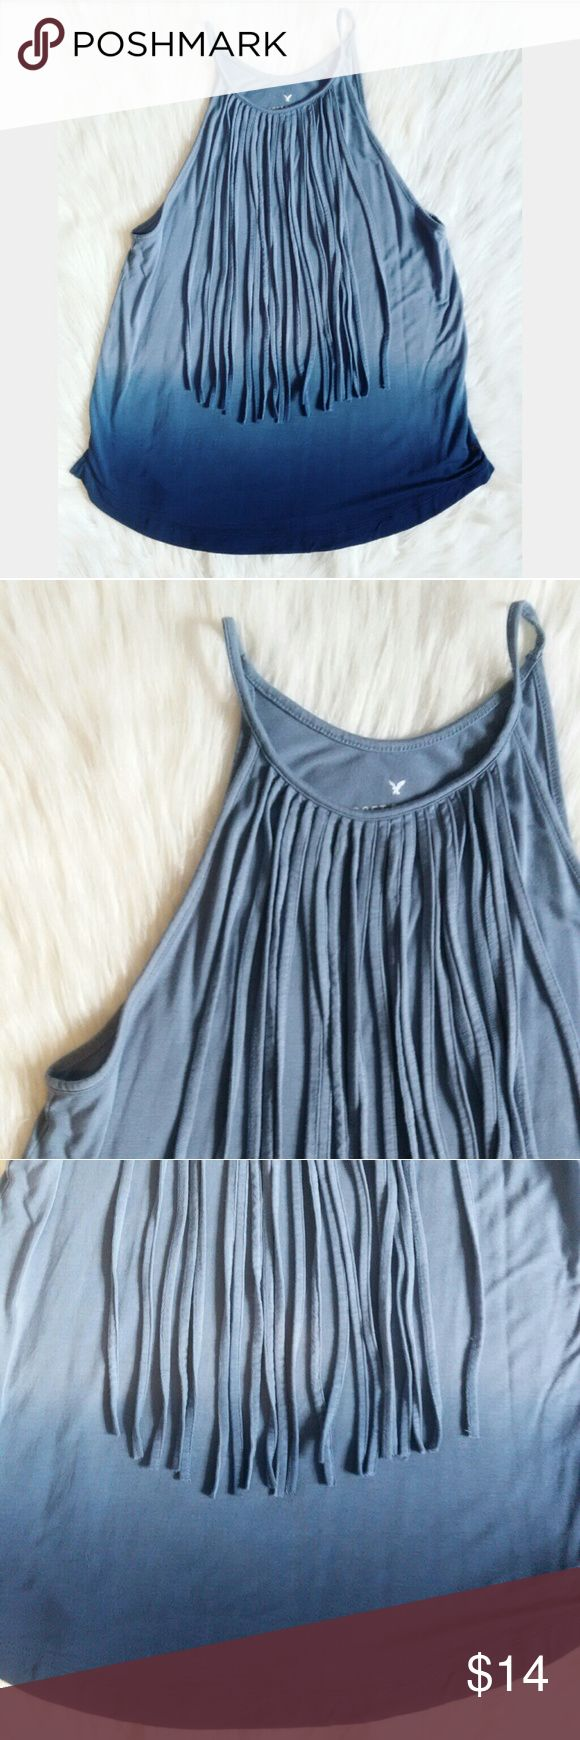 American Eagle Soft & Sexy Fringe Tank Like new! American Eagle Soft & Sexy fringe tank top. Ombre of blue colors..so so soft!  Please feel free to ask any questions you may have :) As always, I ship within 24 hours!! American Eagle Outfitters Tops Tank Tops